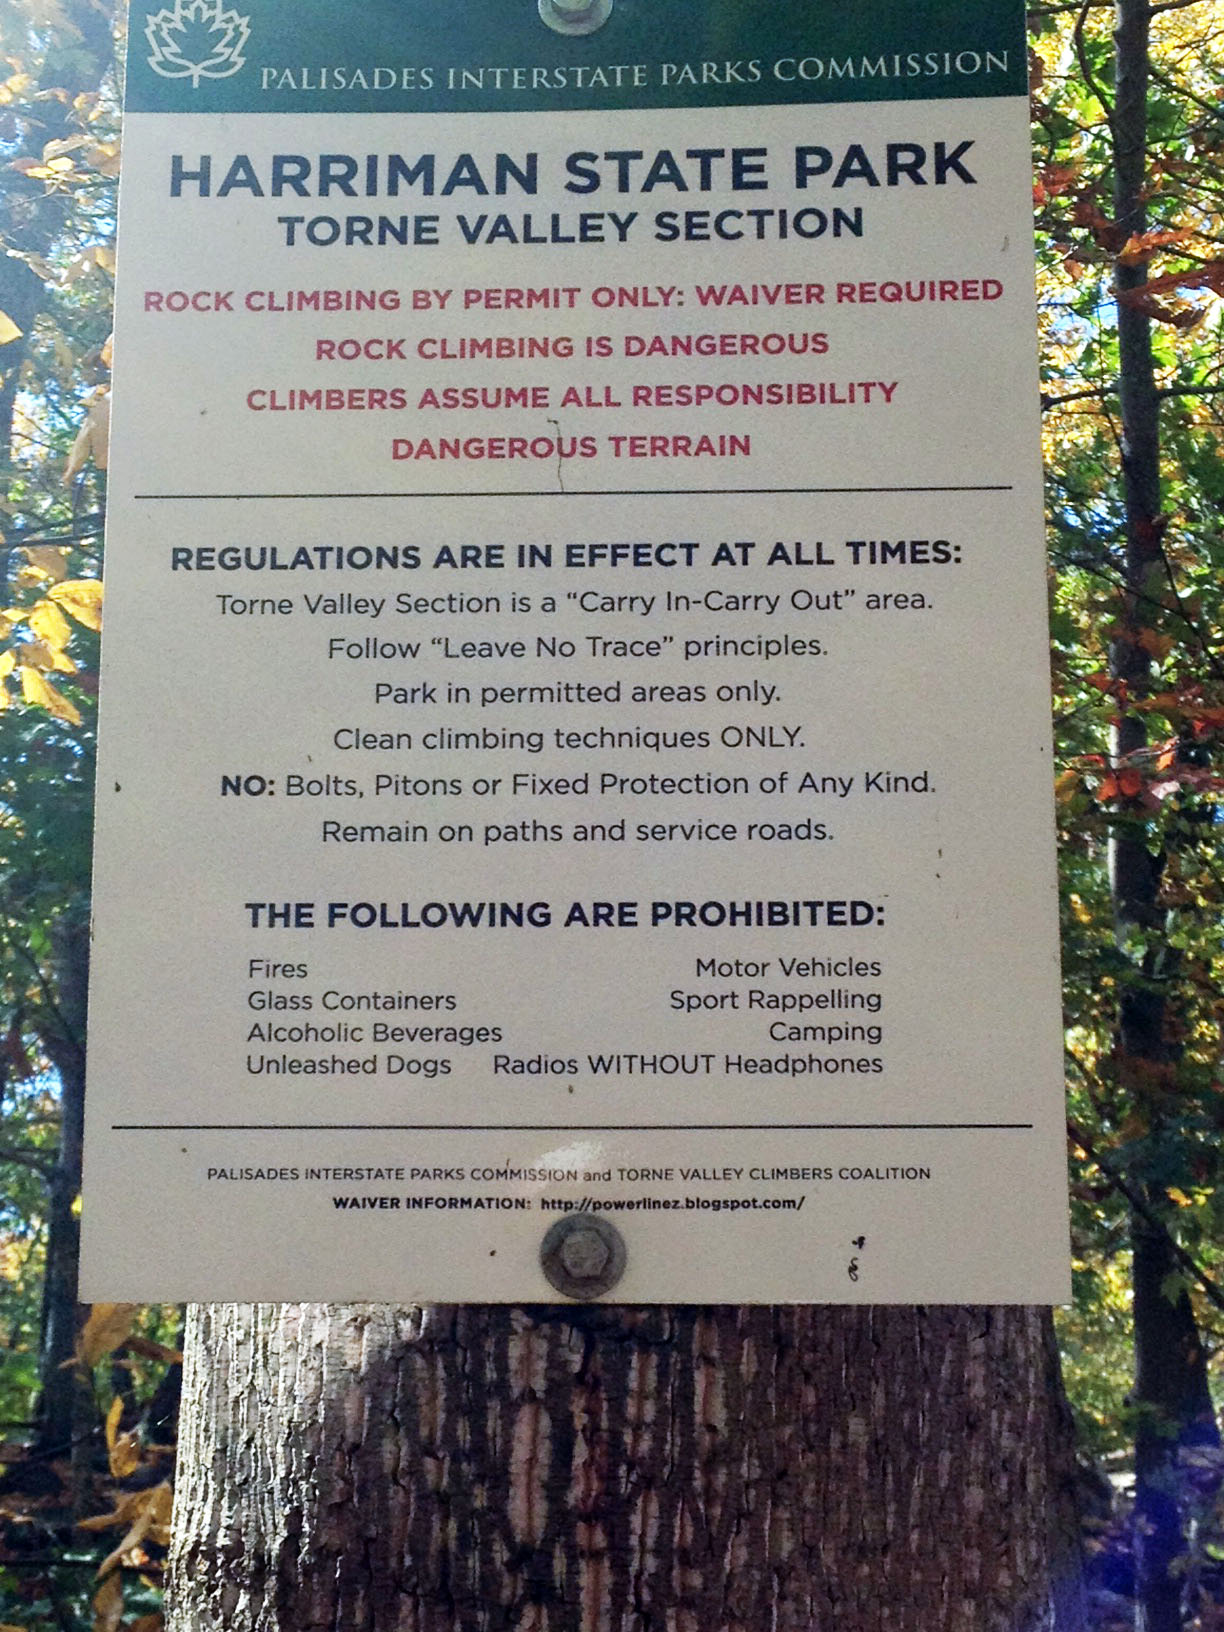 Sign describing the rules for using Harriman State Park's newly-opened Powerlinez Climbing area, in the Torne Valley section of the park.